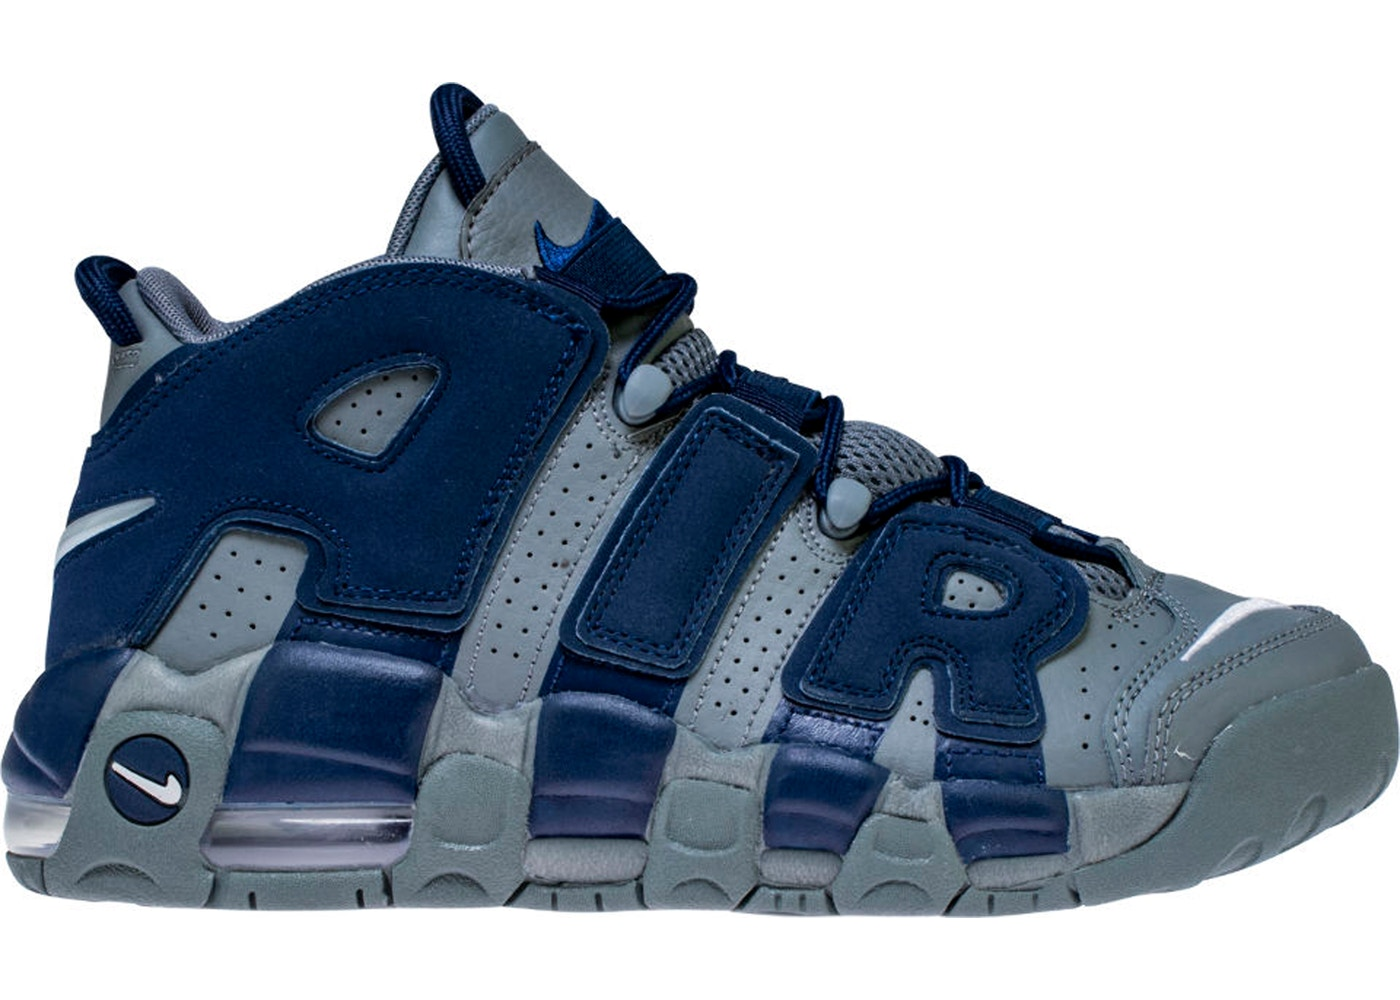 9efa89462031d Air More Uptempo 96 Cool Grey Midnight Navy (GS) - 415082-009